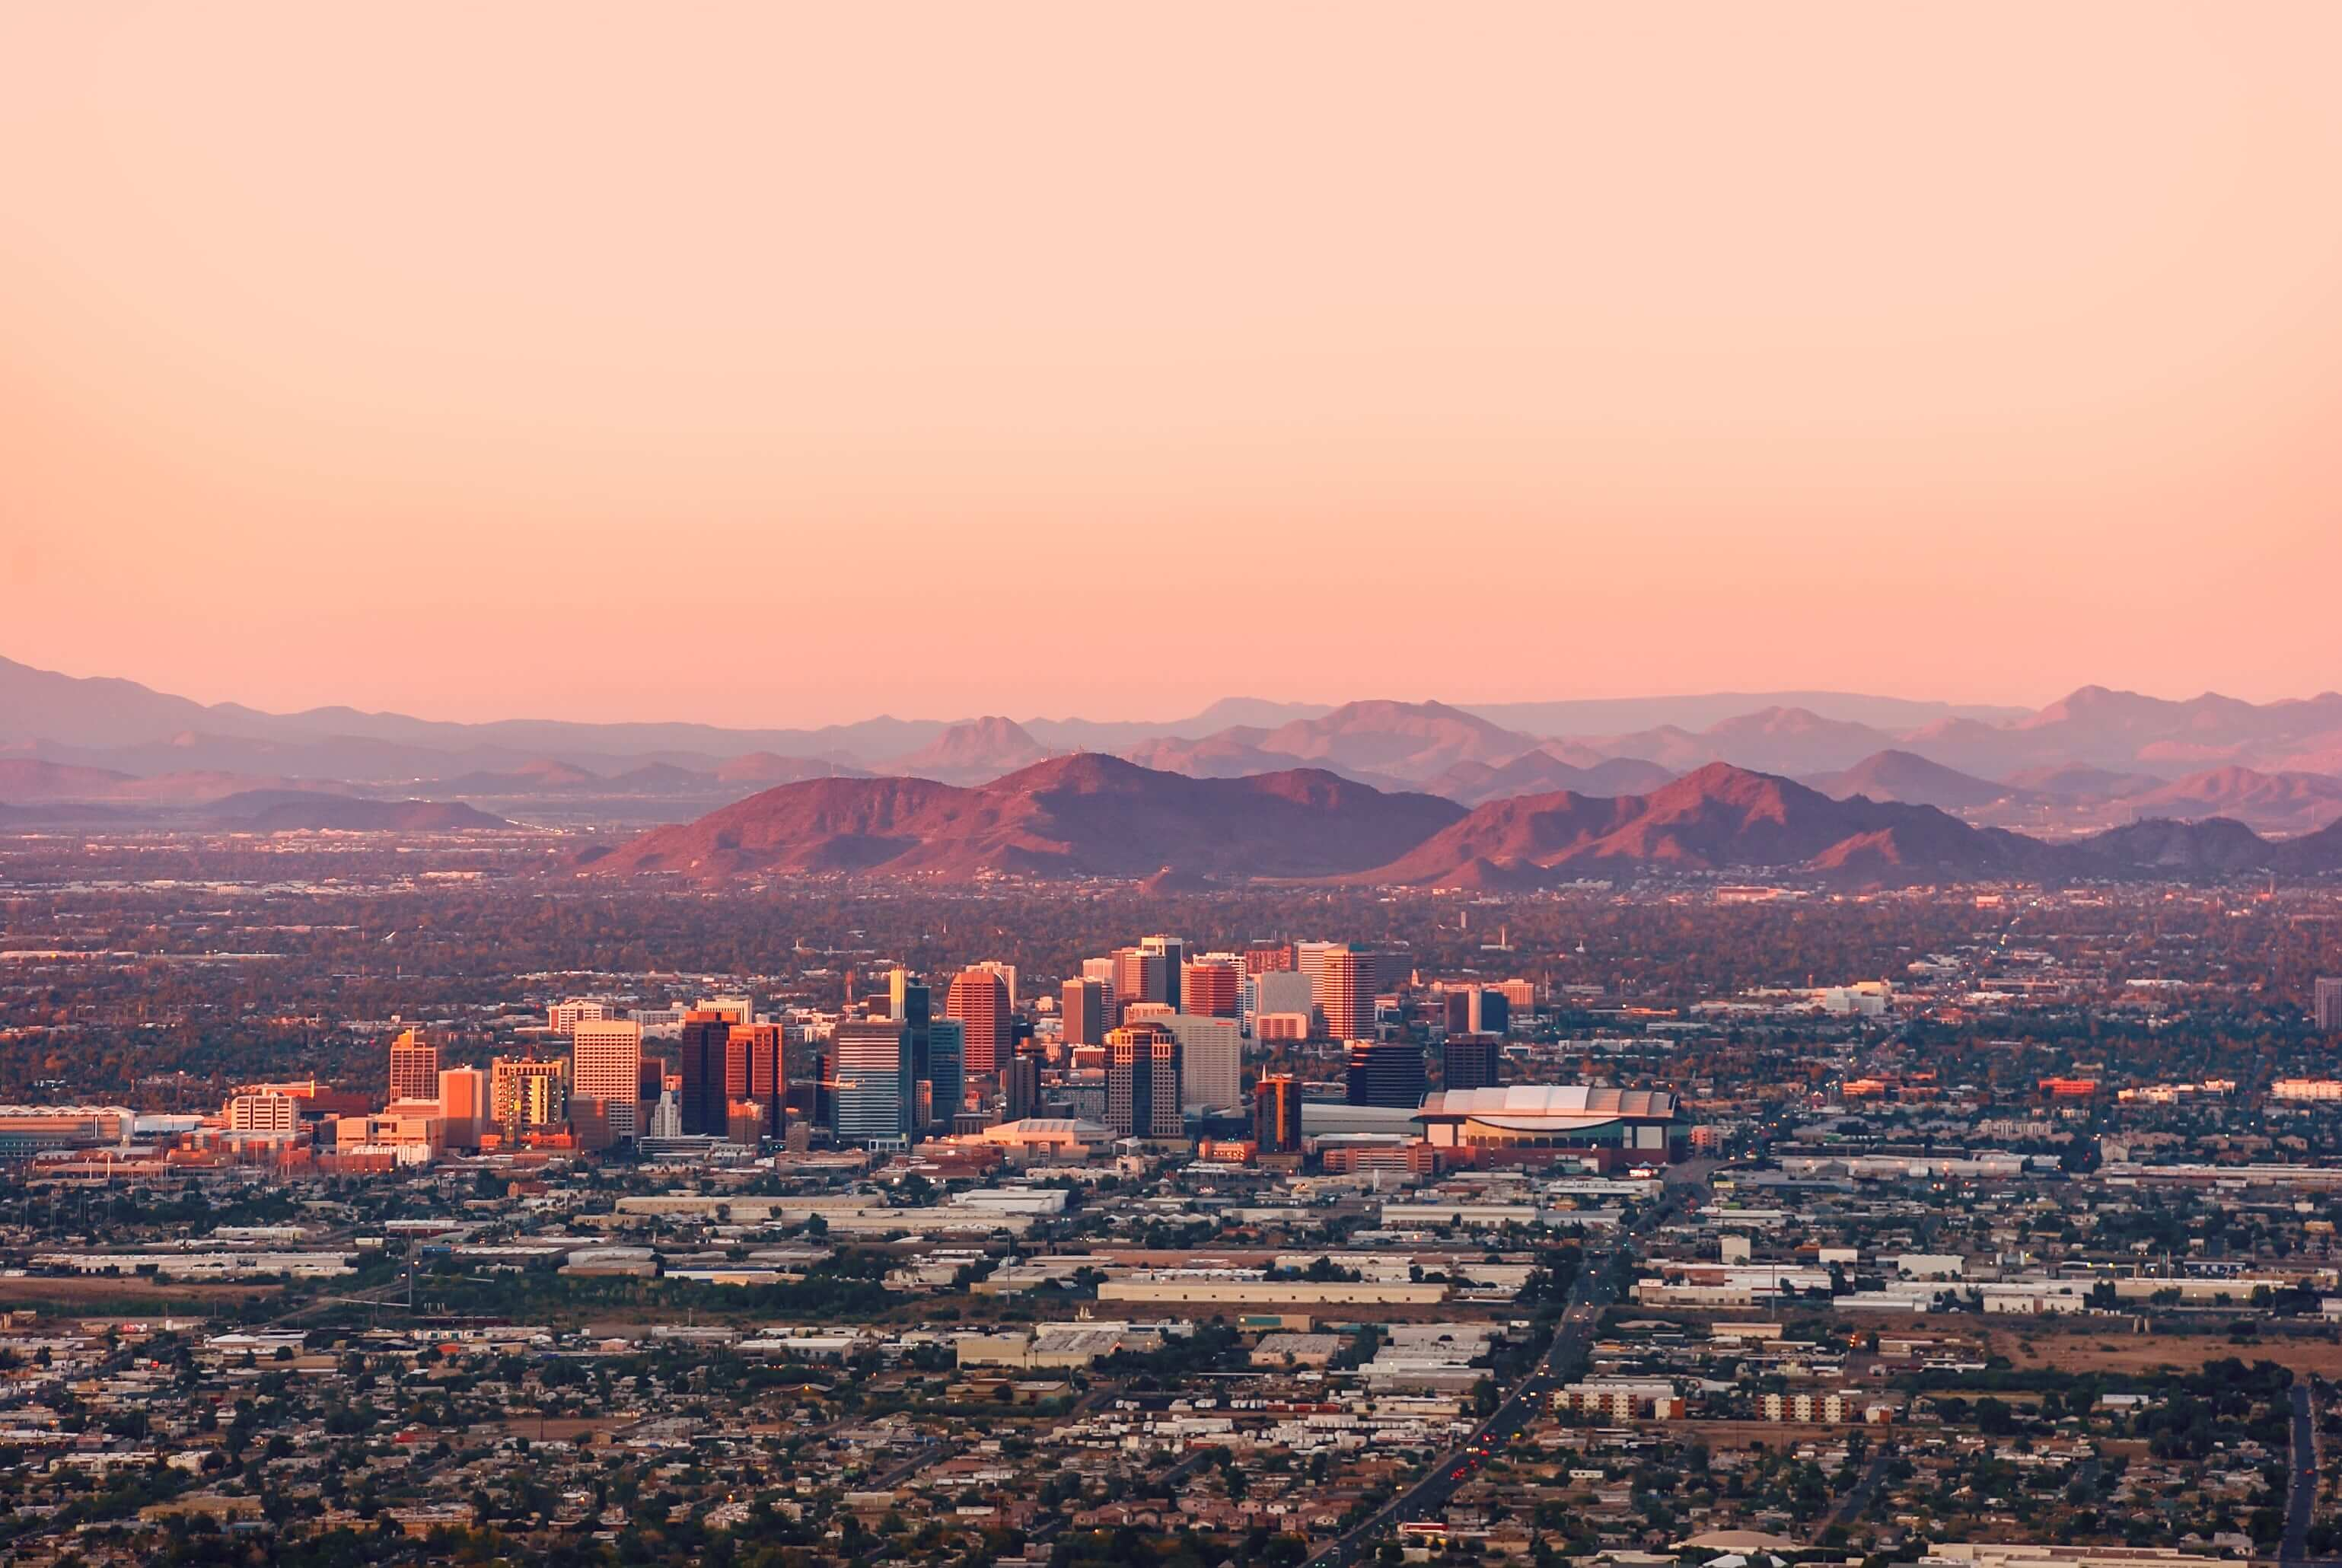 View of Phoenix, Arizona at dusk